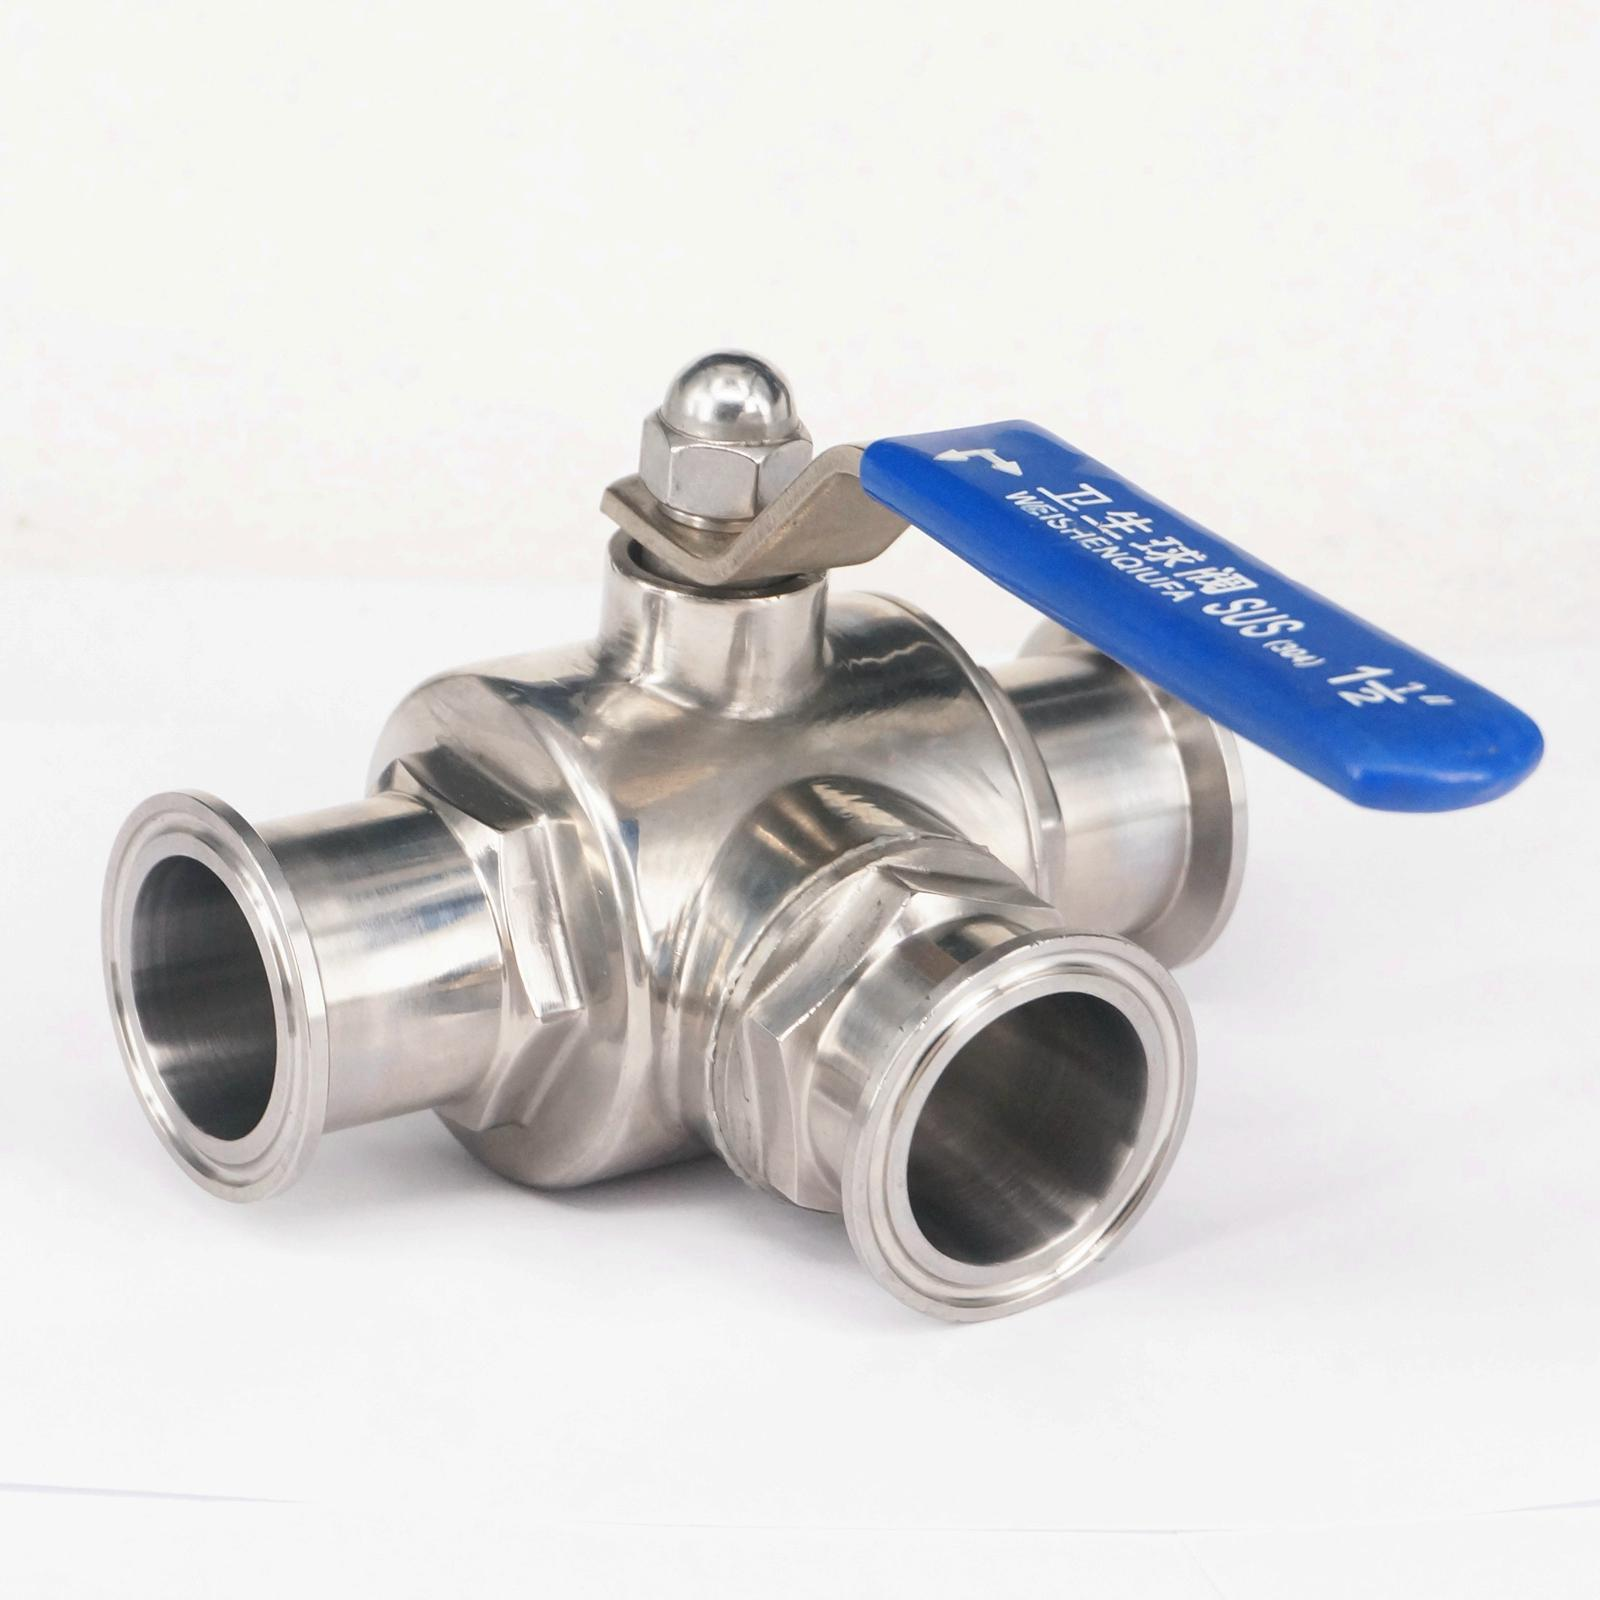 1-1/2 38mm 304 Stainless Steel Sanitary 3 Way L port Ball Valve Tri Clamp Ferrule Type For Homebrew Diary Product 2 sanitary stainless steel ball valve 2 way 304 quick installed food grade pneumatic valve double acting straight way valve